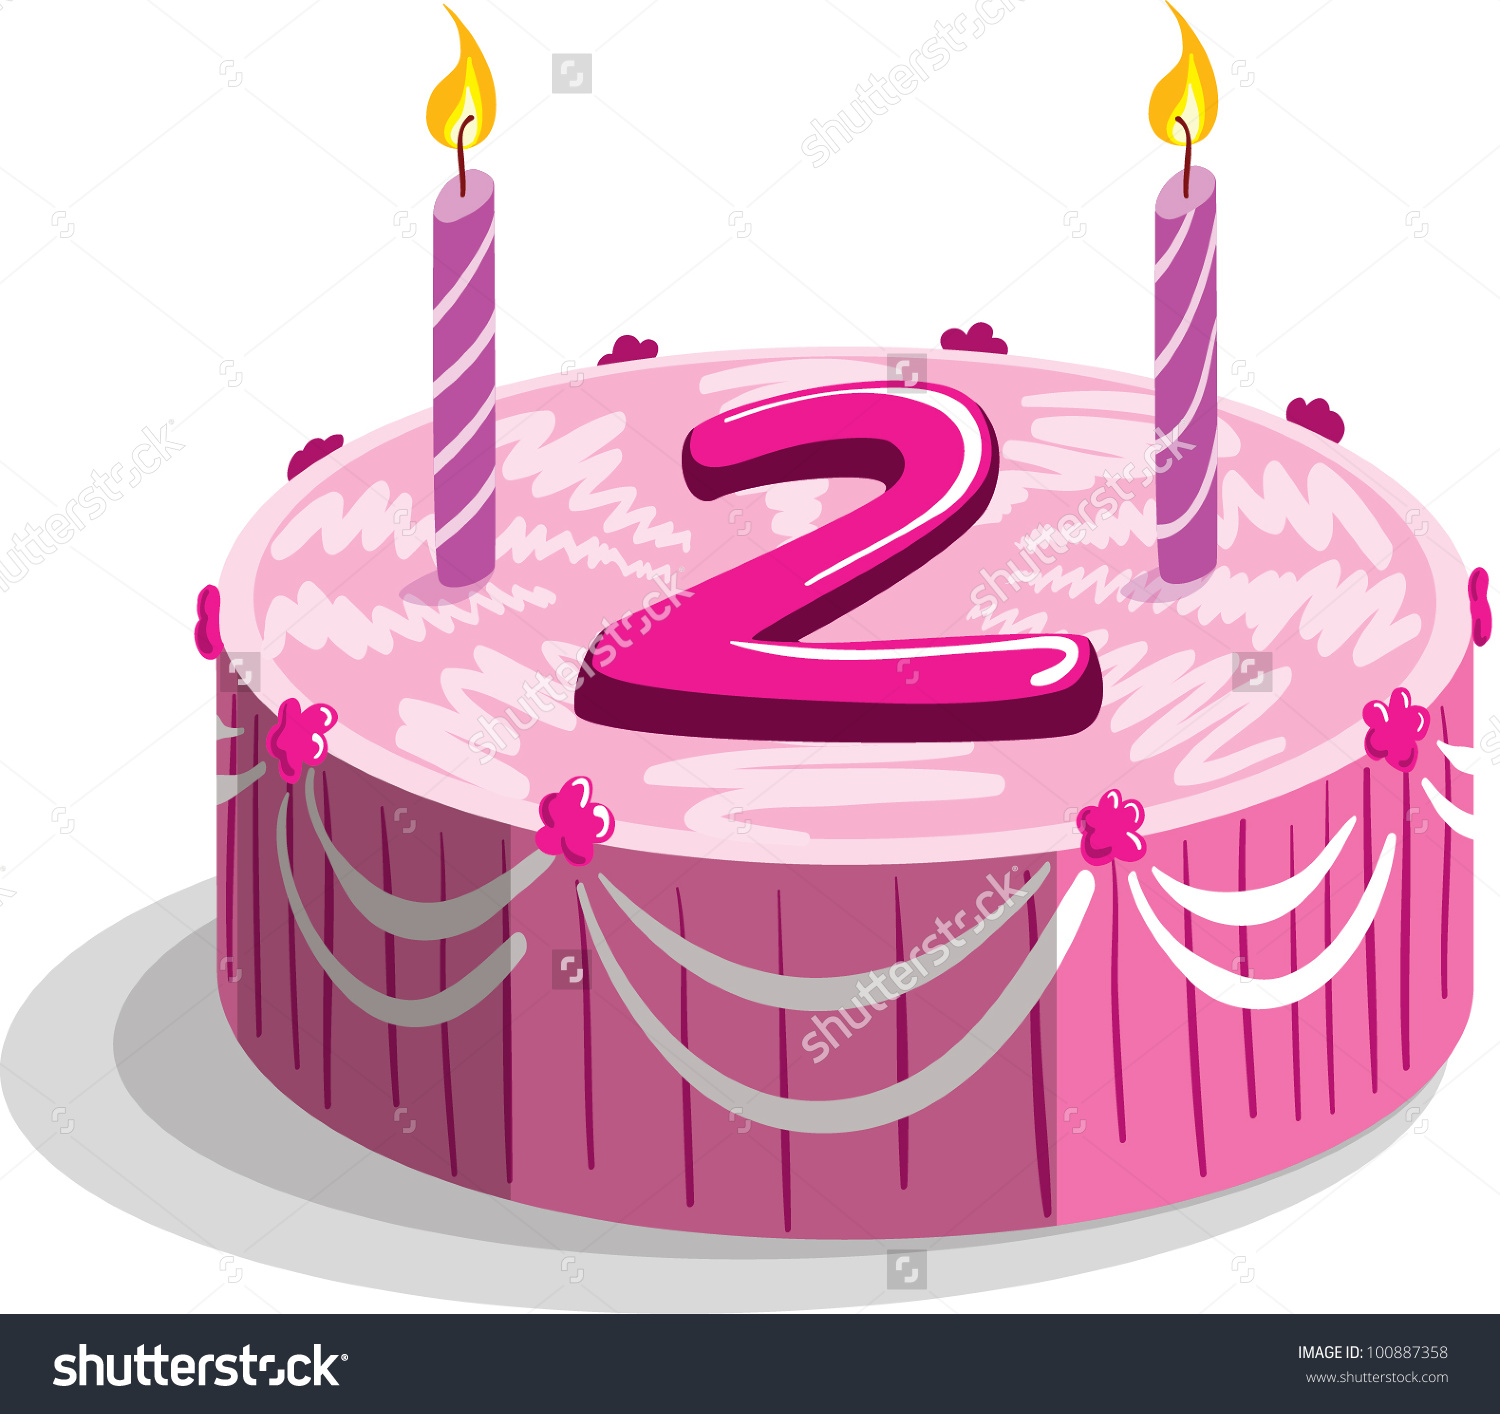 2nd birthday cake clipart - ClipartFest jpg free